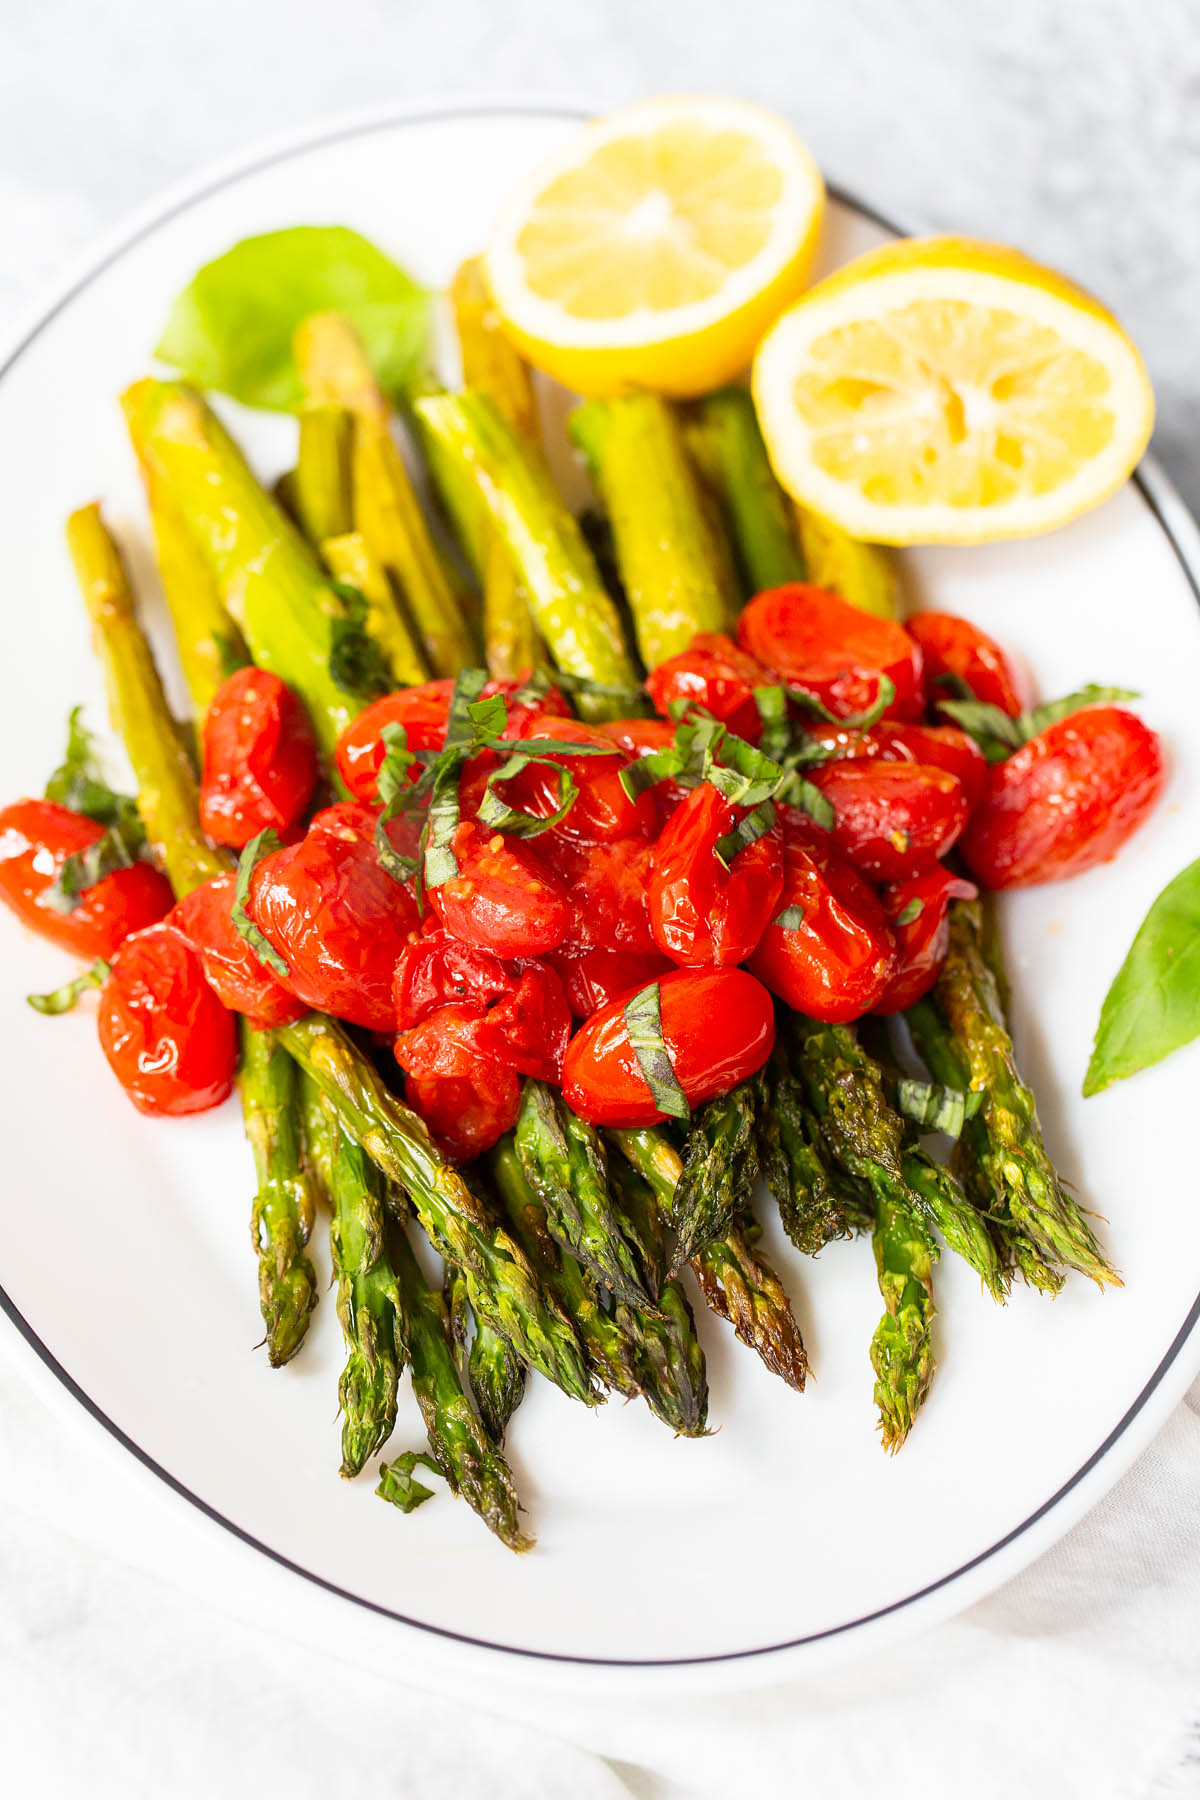 roasted asparagus and blistered cherry tomatoes with fresh basil on top